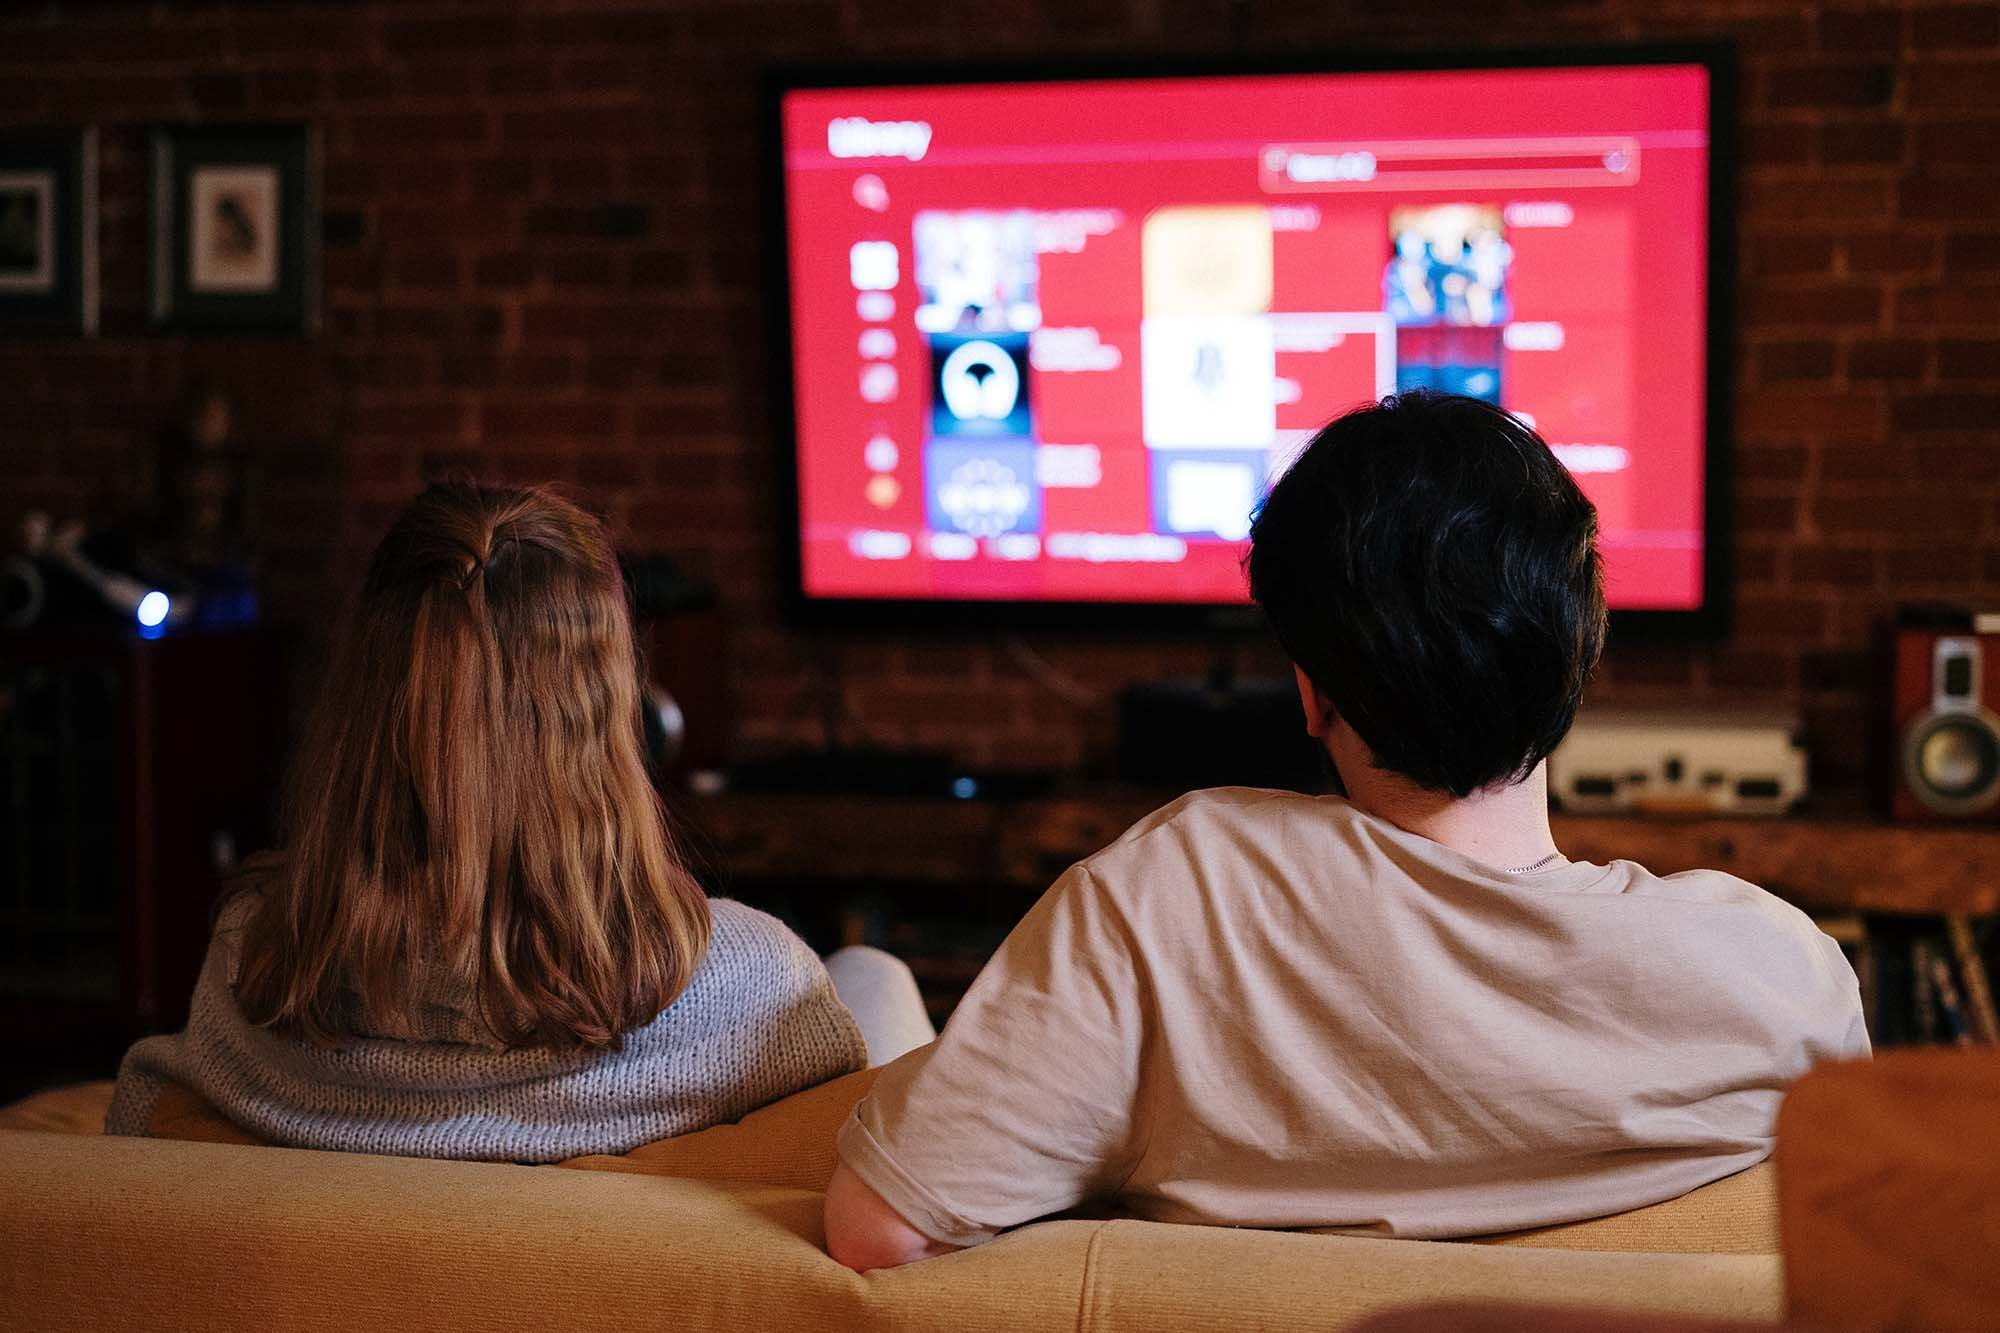 Amazon Prime Day sales: The Best Prime Day 2021 deals for home entertainment systems